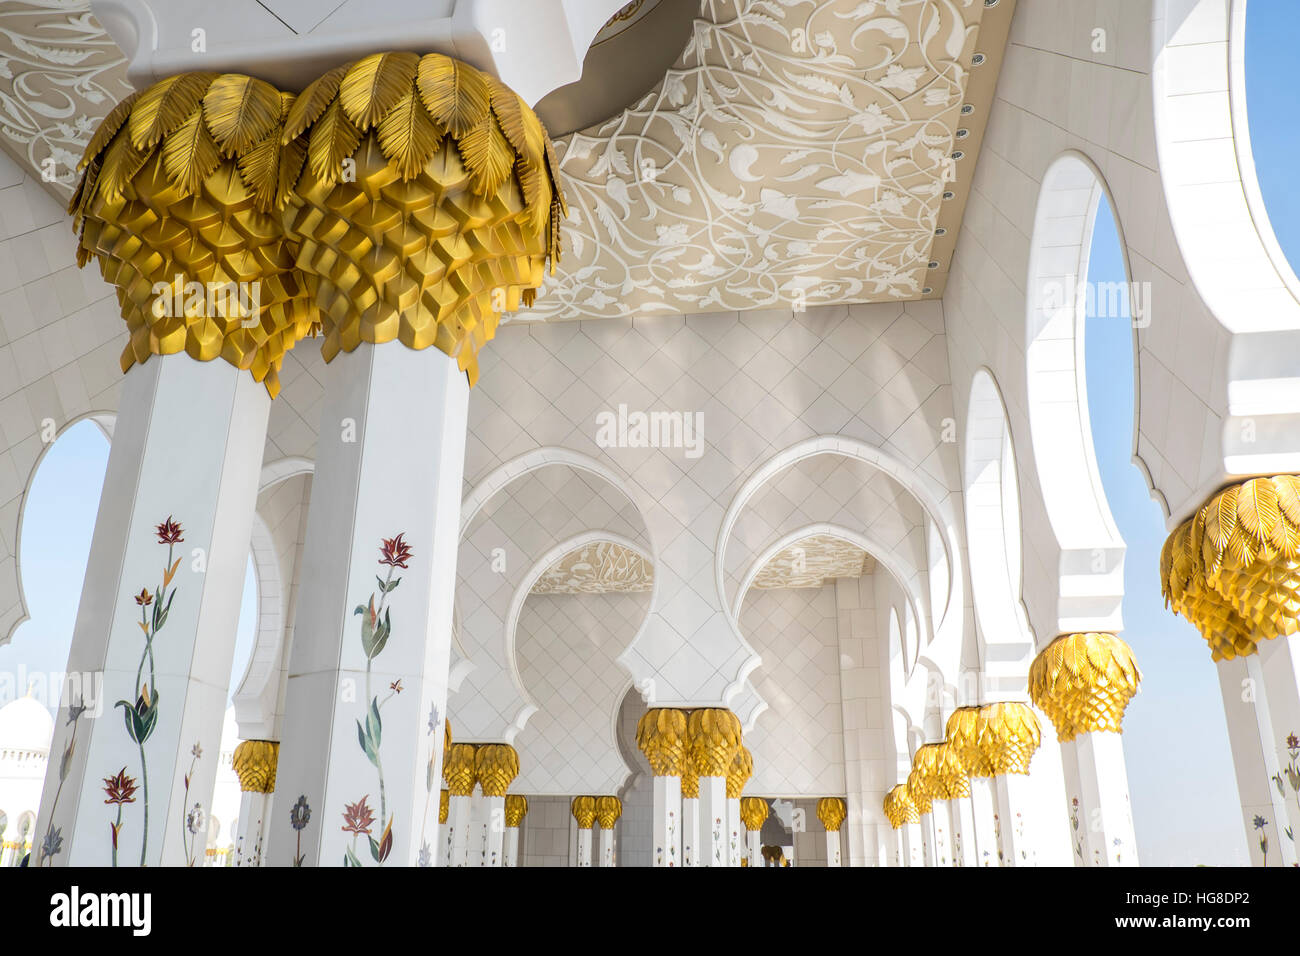 Low angle view of Sheikh Zayed Mosque - Stock Image